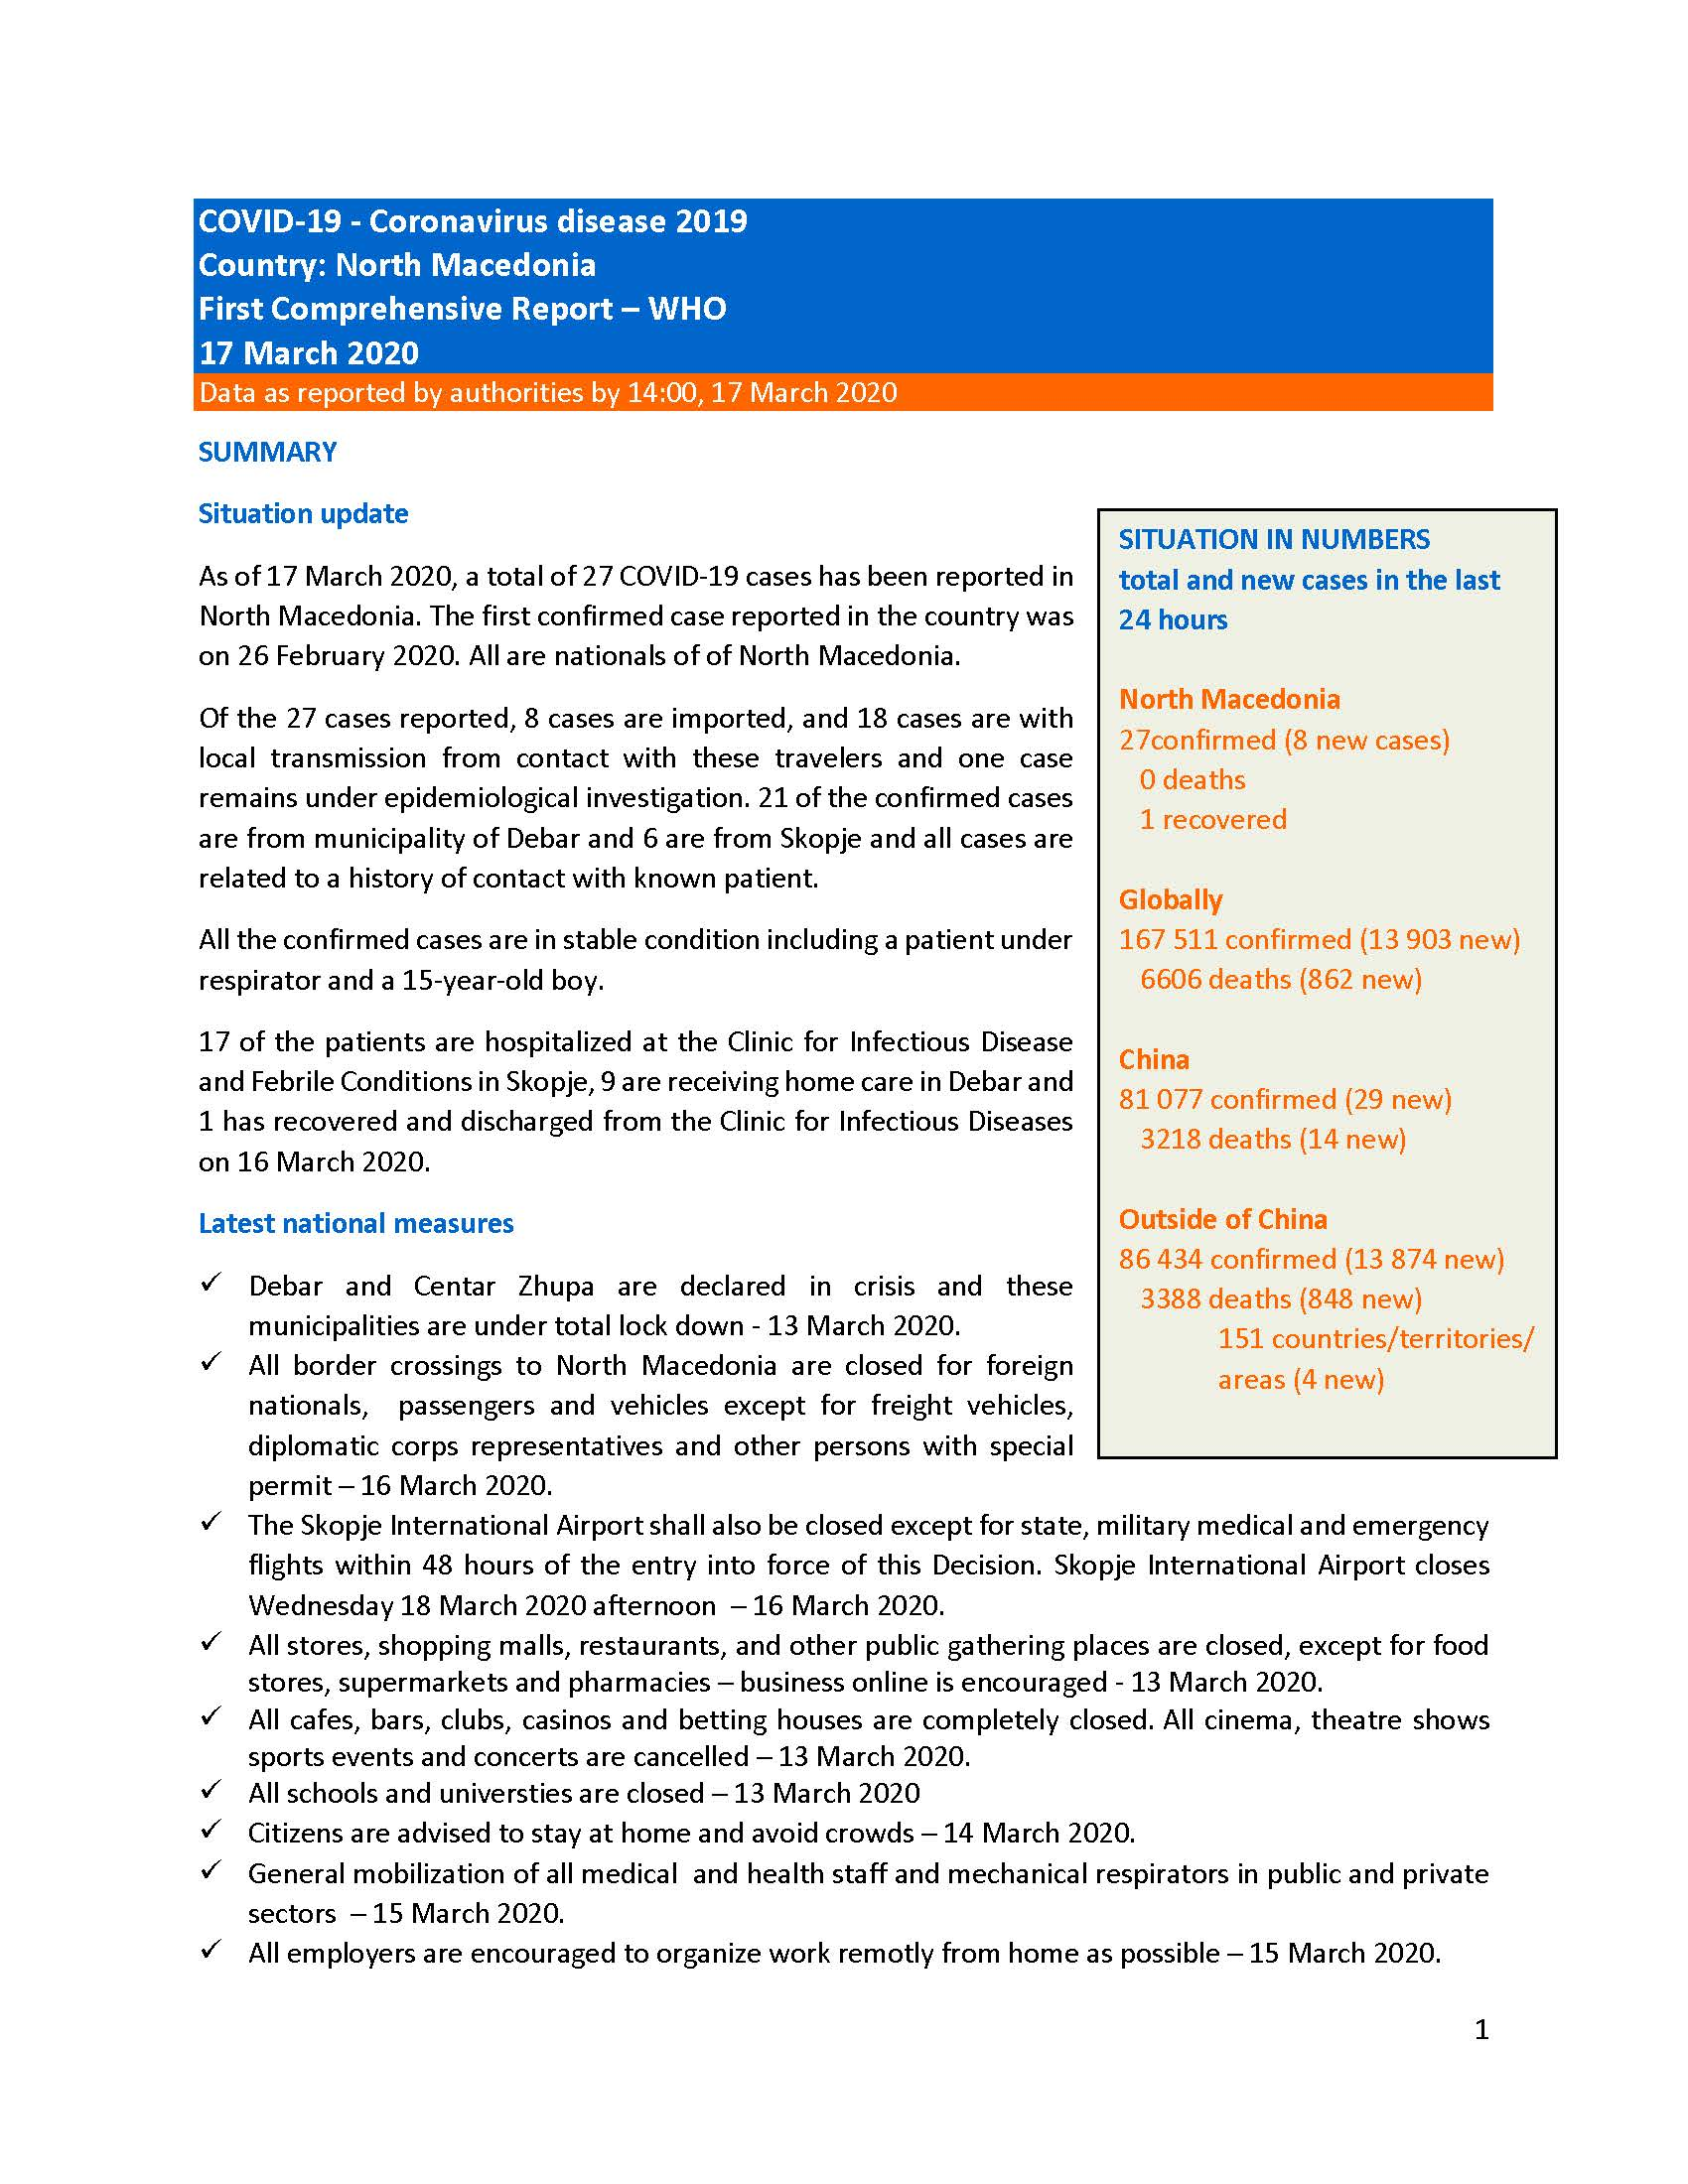 WHO Comprehensive report 17.03.2020